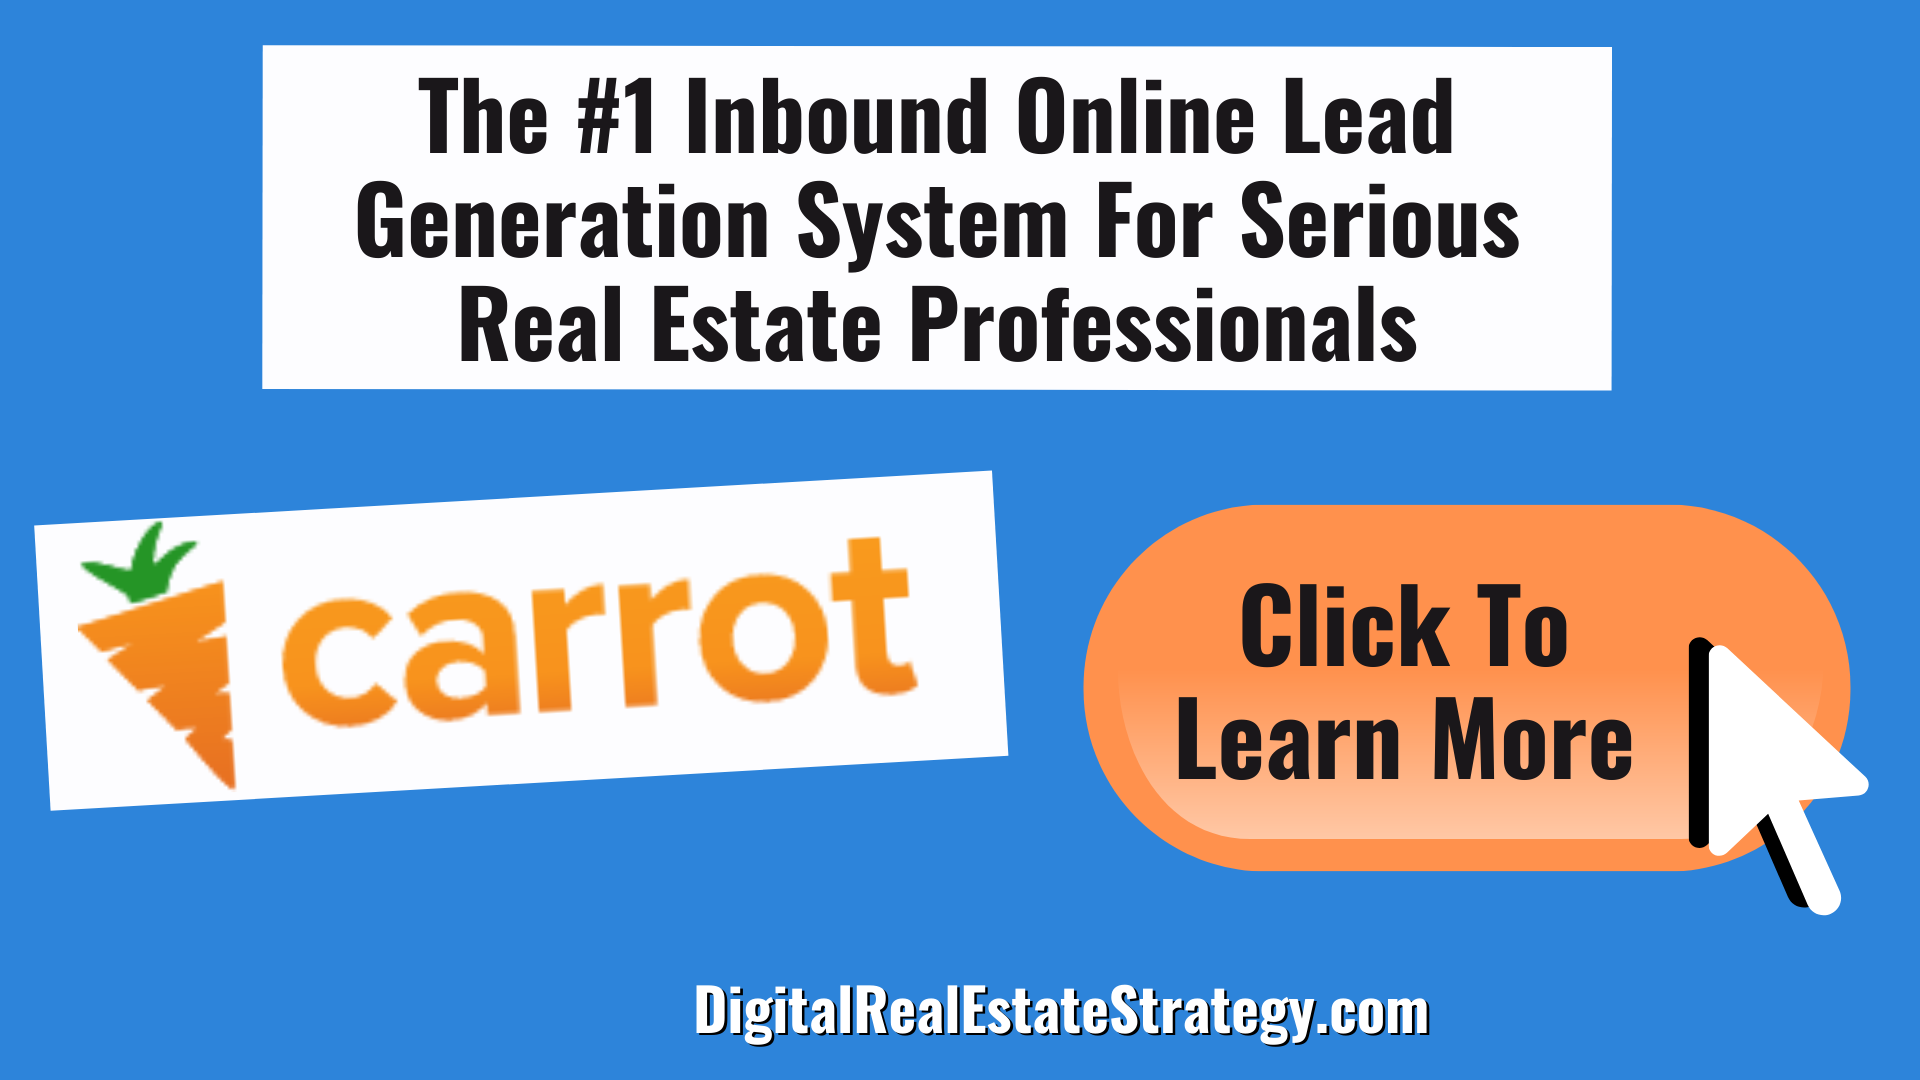 Investor Carrot - High Converting Real Estate Website - Motivated Seller Real Estate Leads Through Facebook